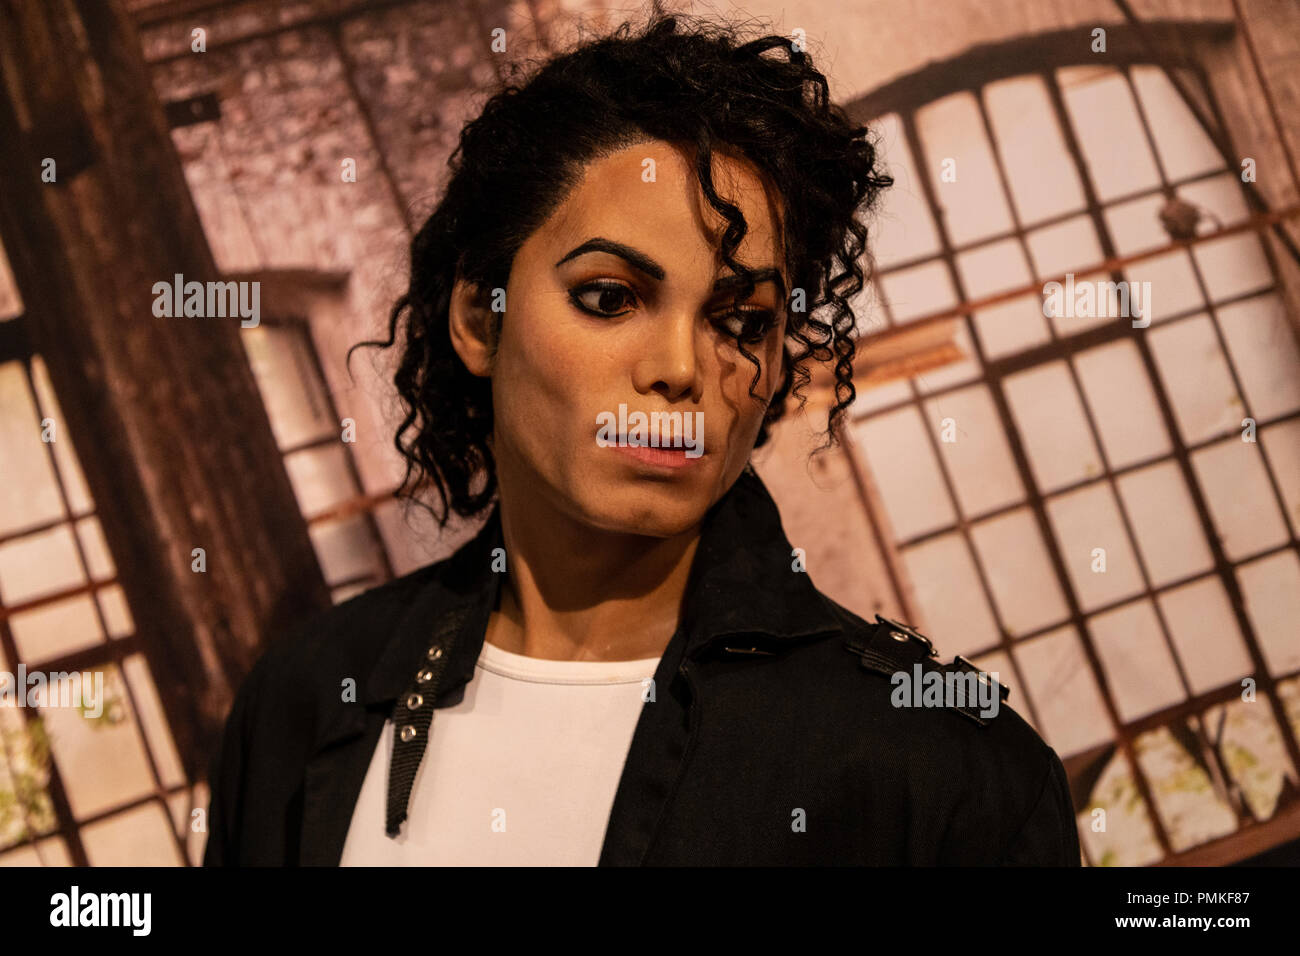 ef8fe308e1d7be Wax figure of Michael Jackson in Madame Tussauds Wax museum in Amsterdam,  Netherlands